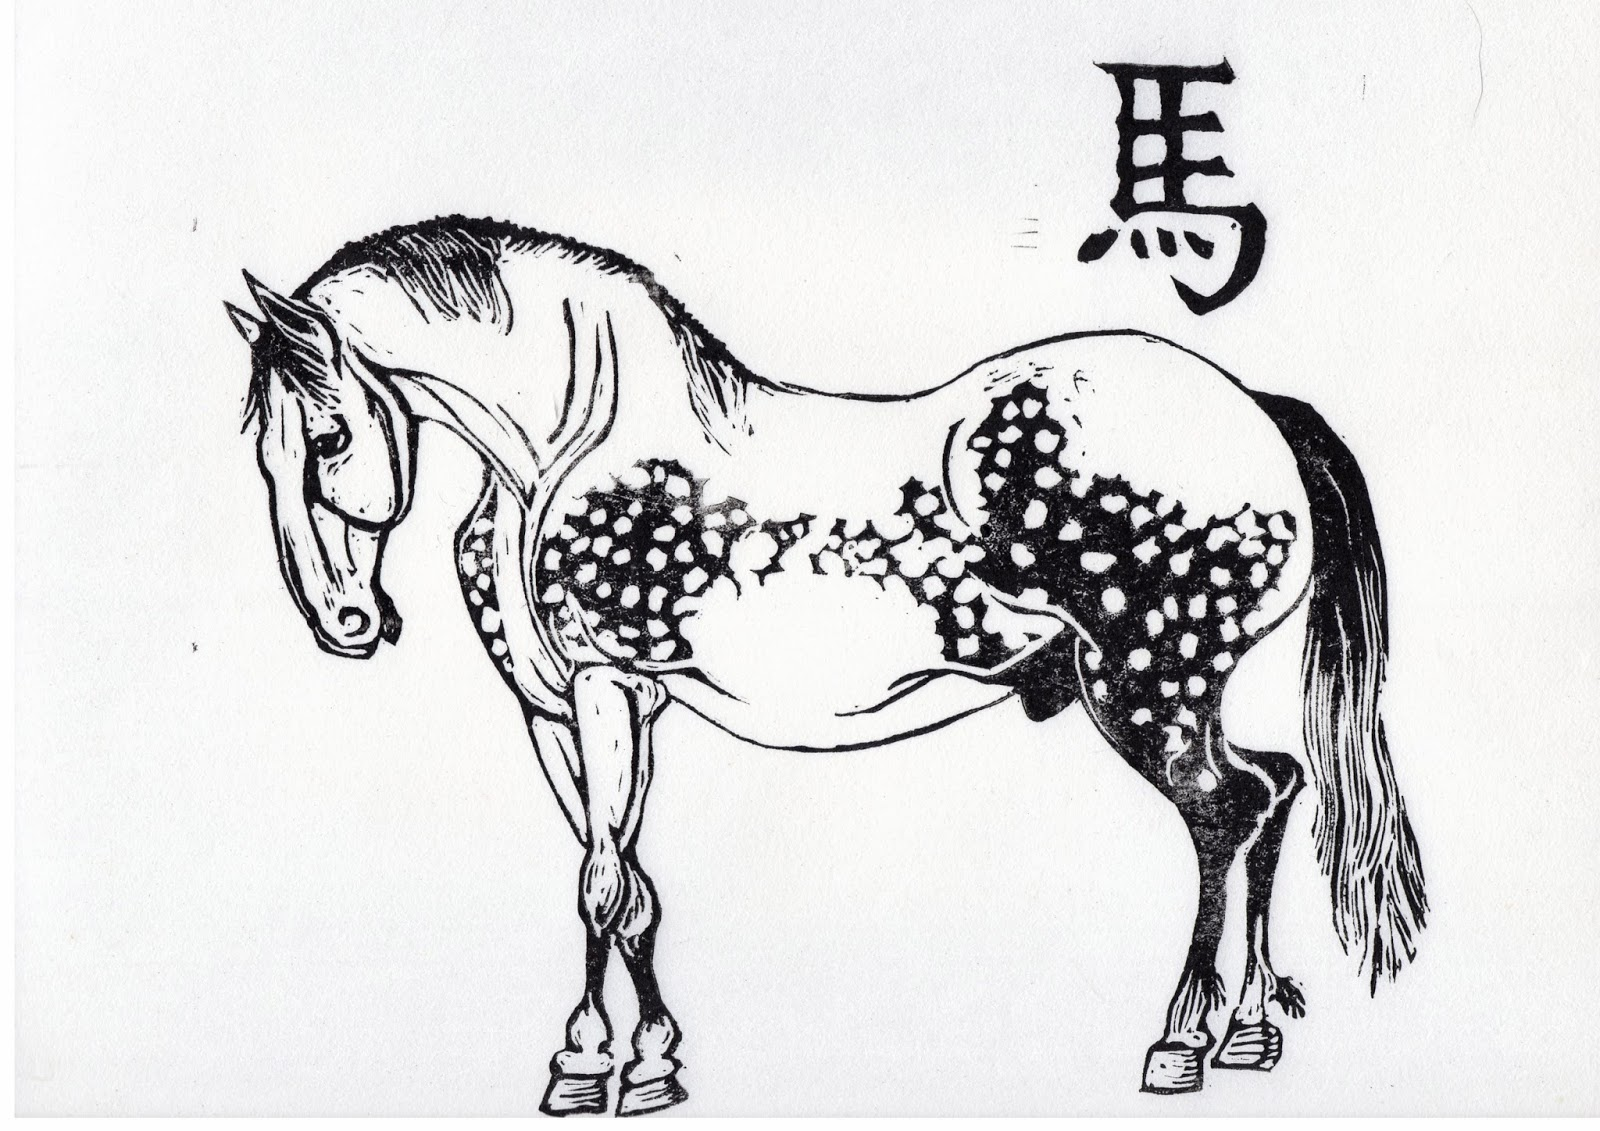 https://www.etsy.com/ca/listing/41151704/ma-the-horse-linocut-7th-in-chinese